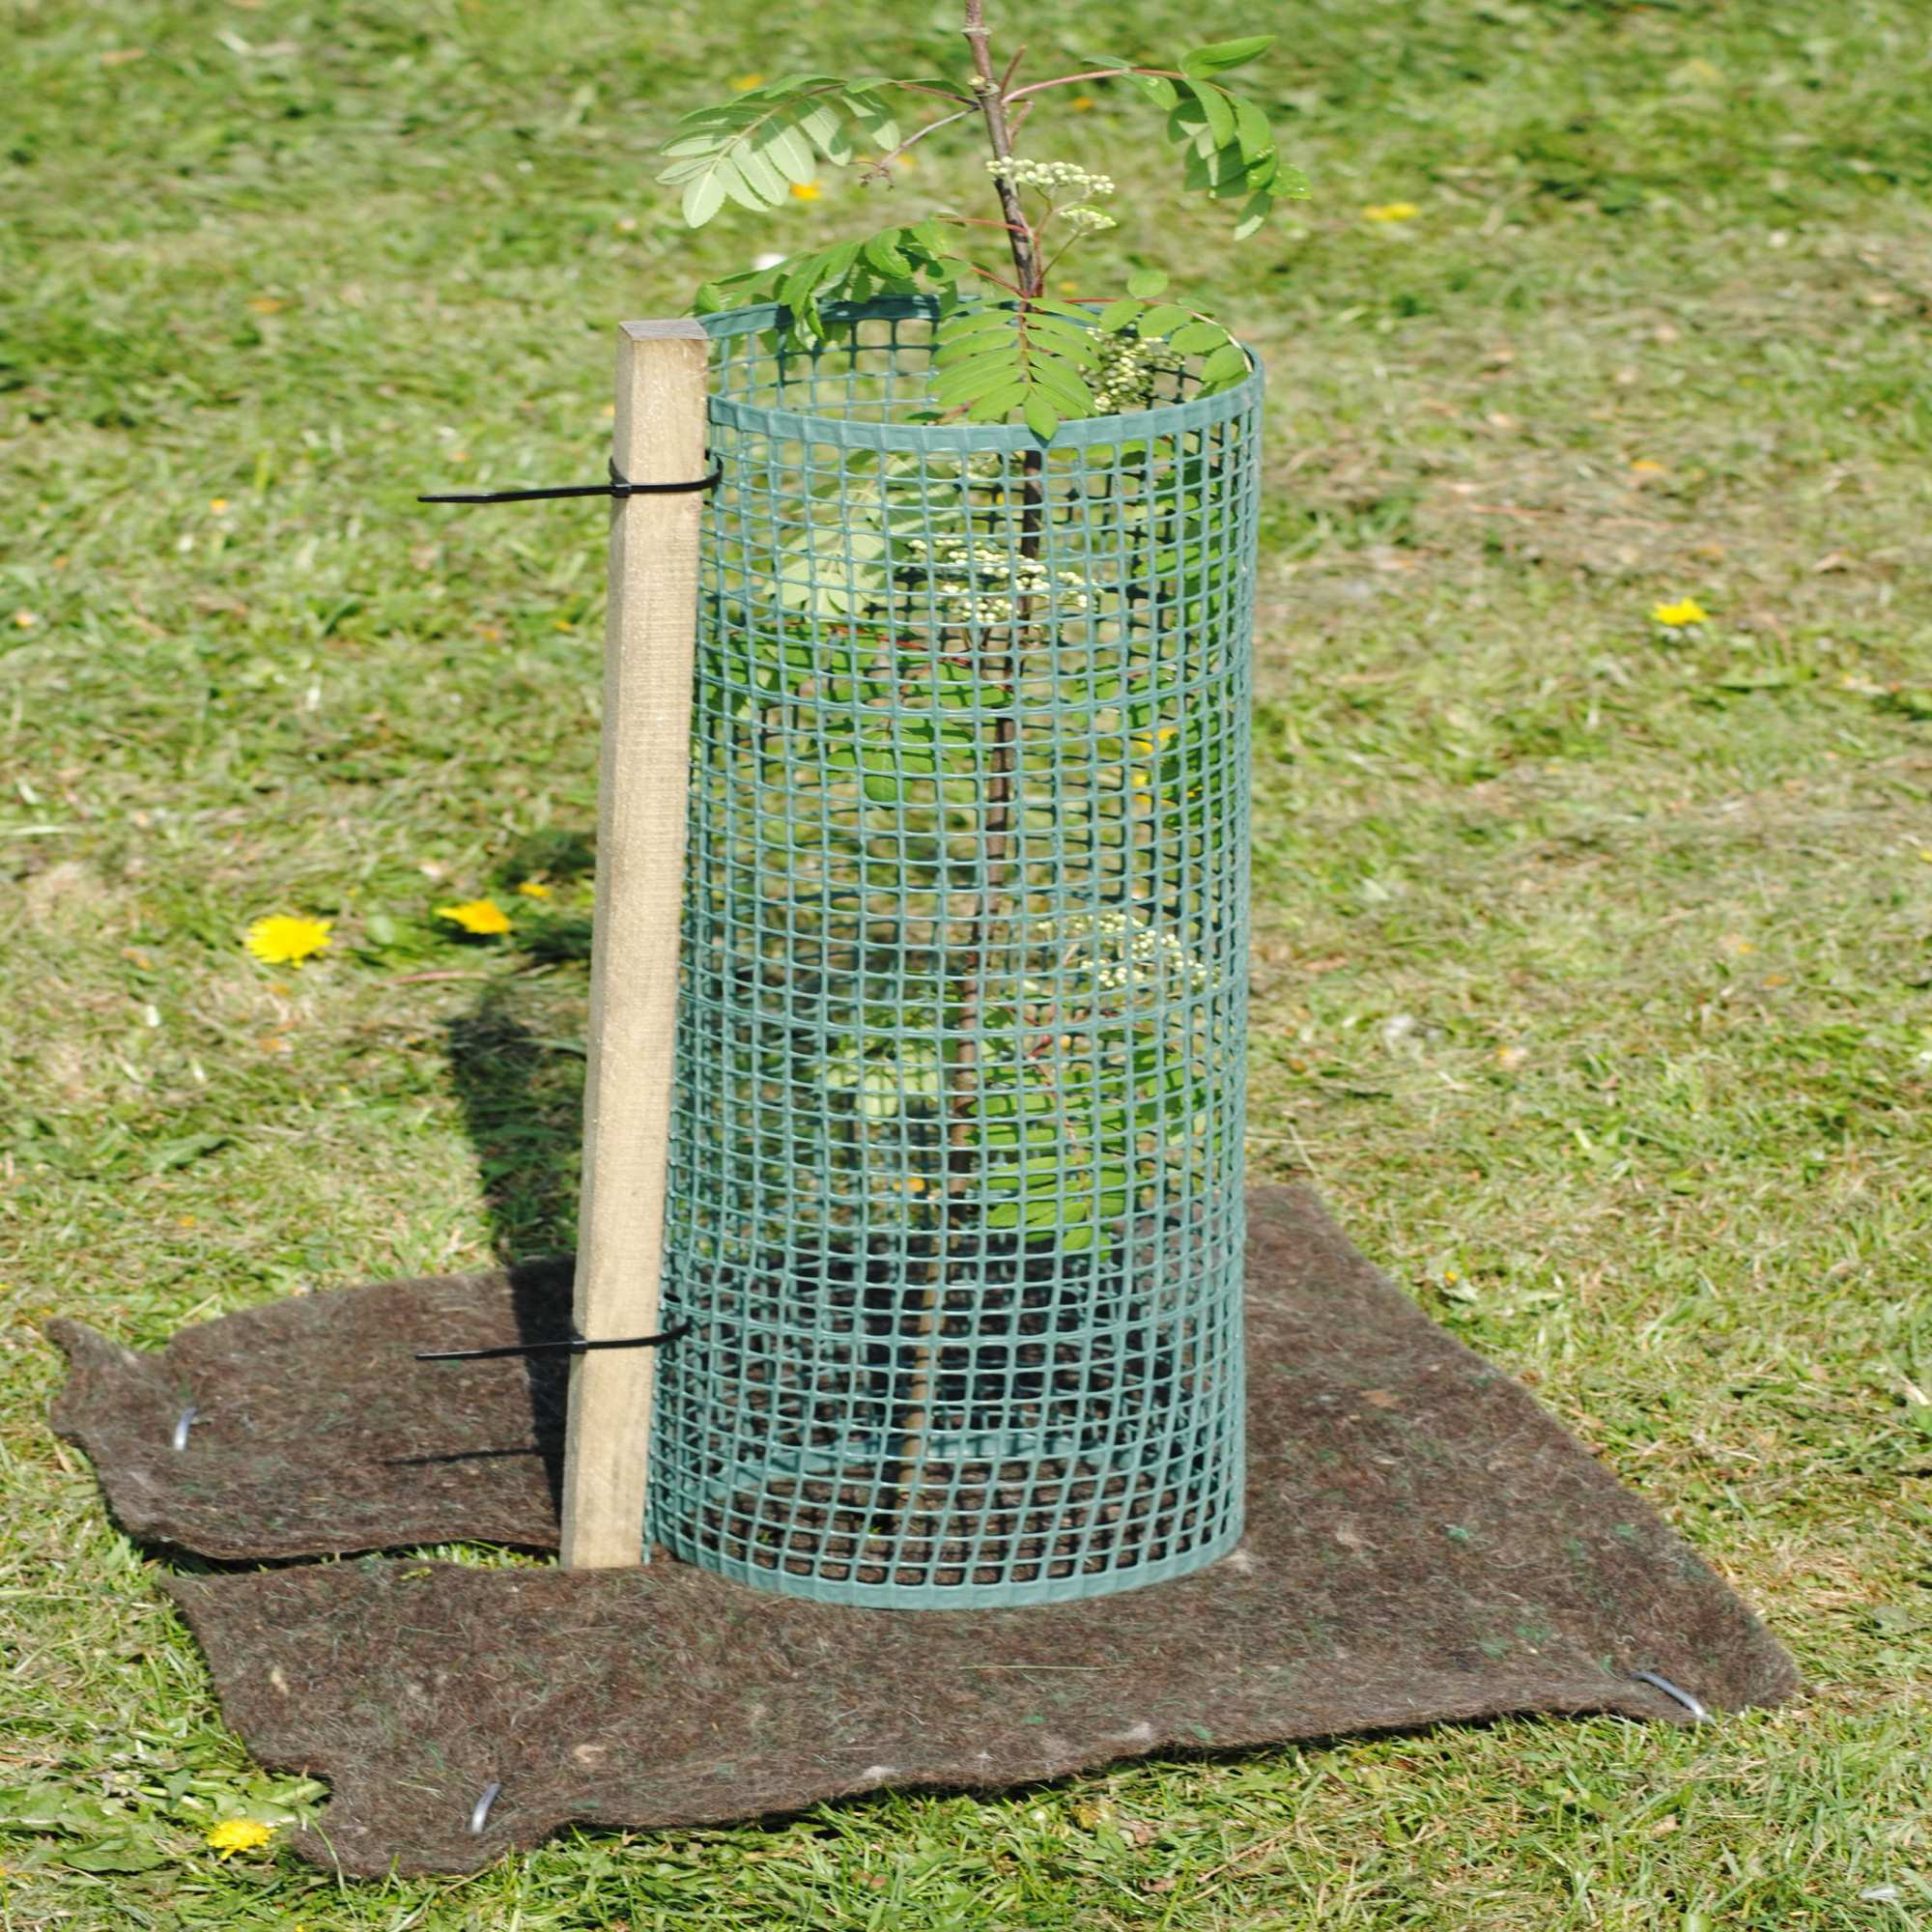 mesh tree guard shelters and stake packages